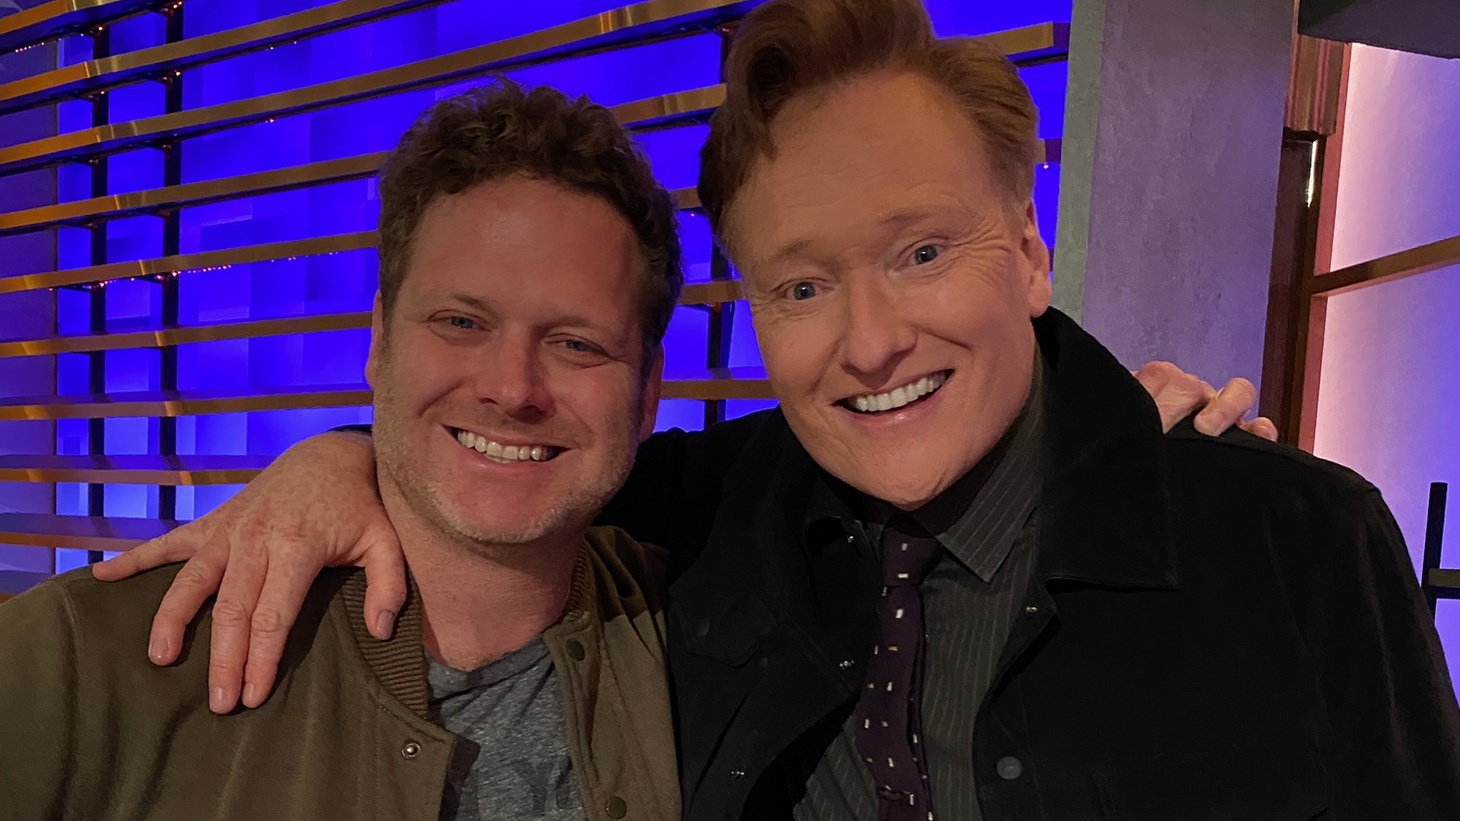 """Matt O'Brien (left) tells us what it's like writing for """"Conan"""" on TBS during quarantine. He's pictured with Conan O'Brien (right)."""